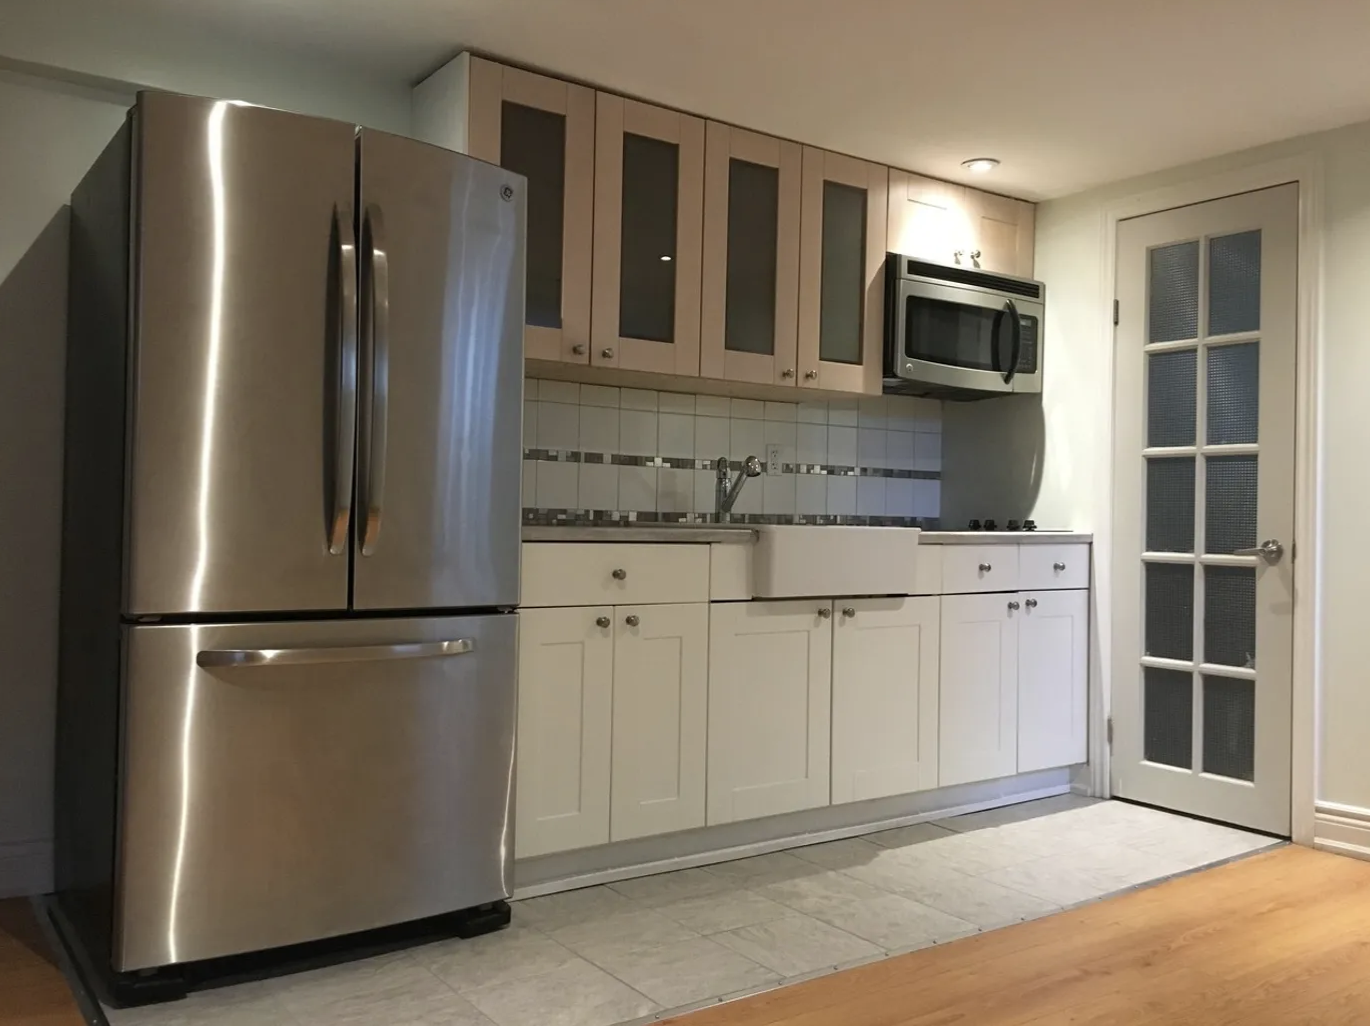 107-willow-ave-kitchen-3